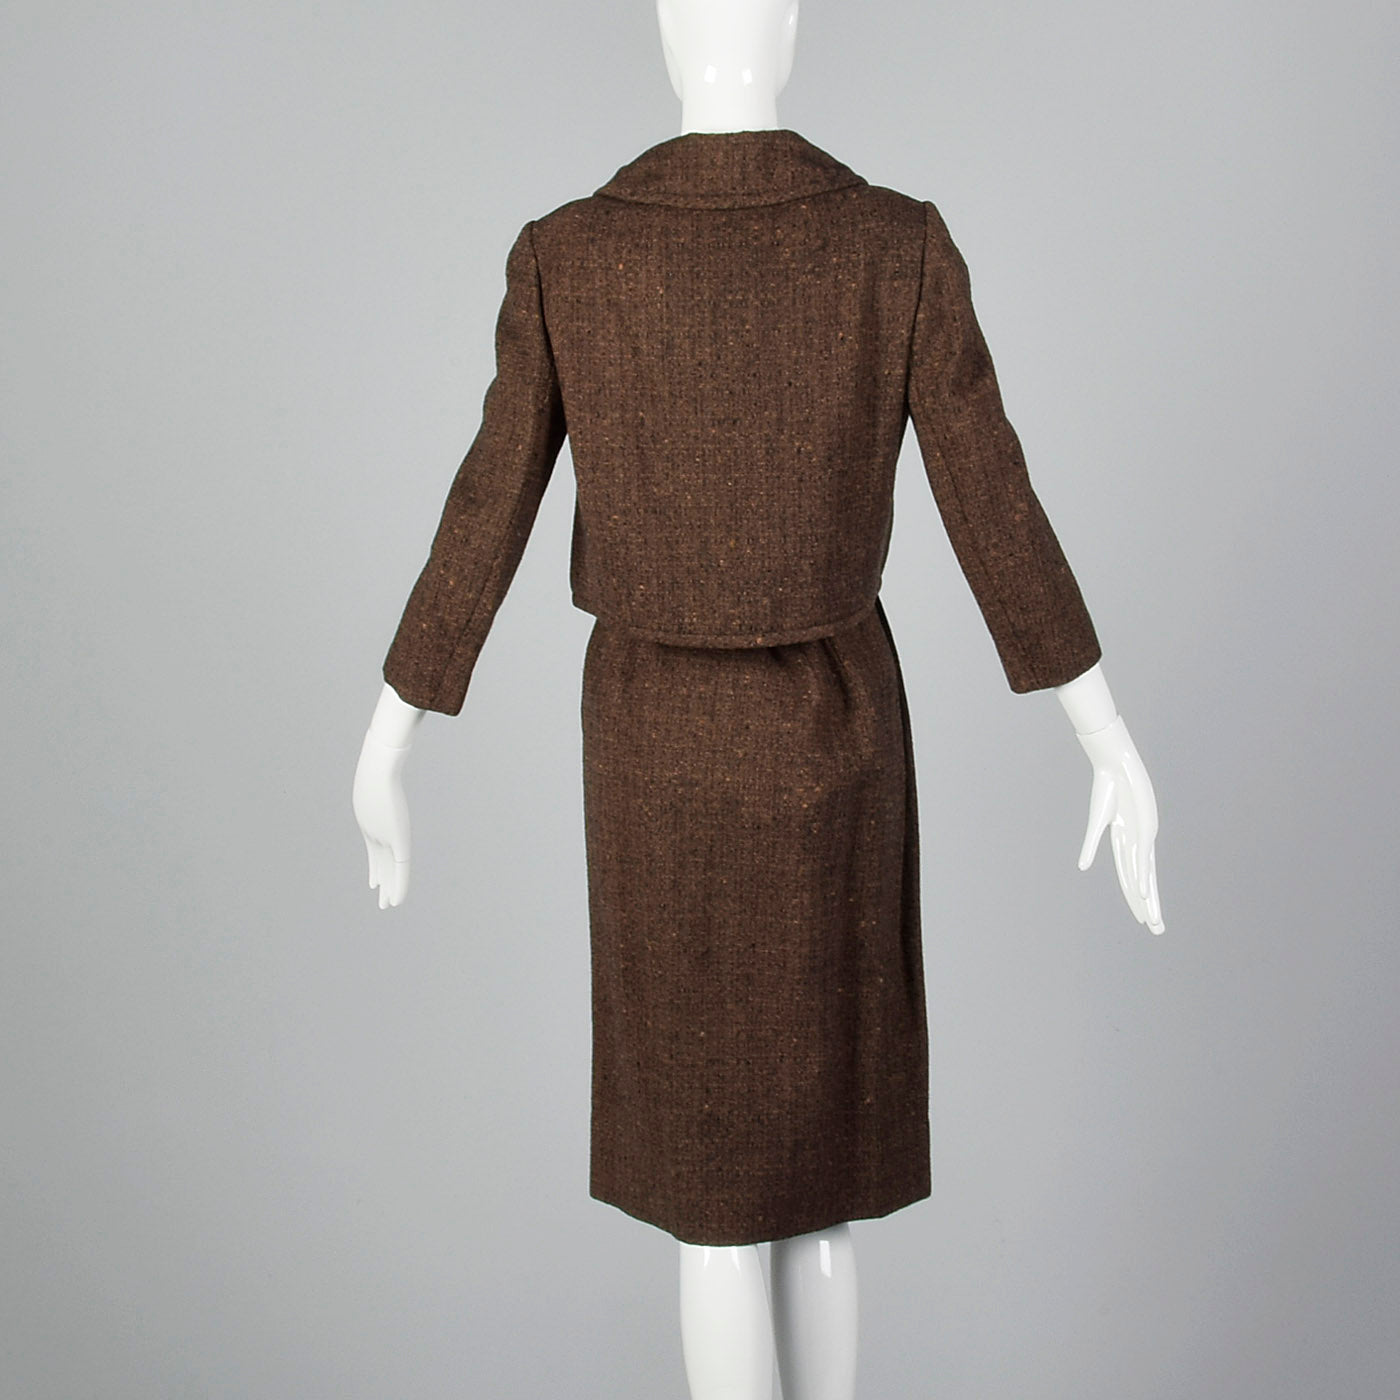 1950s Adele Simpson 28 Shop Wool Tweed Skirt Suit in Brown and Black